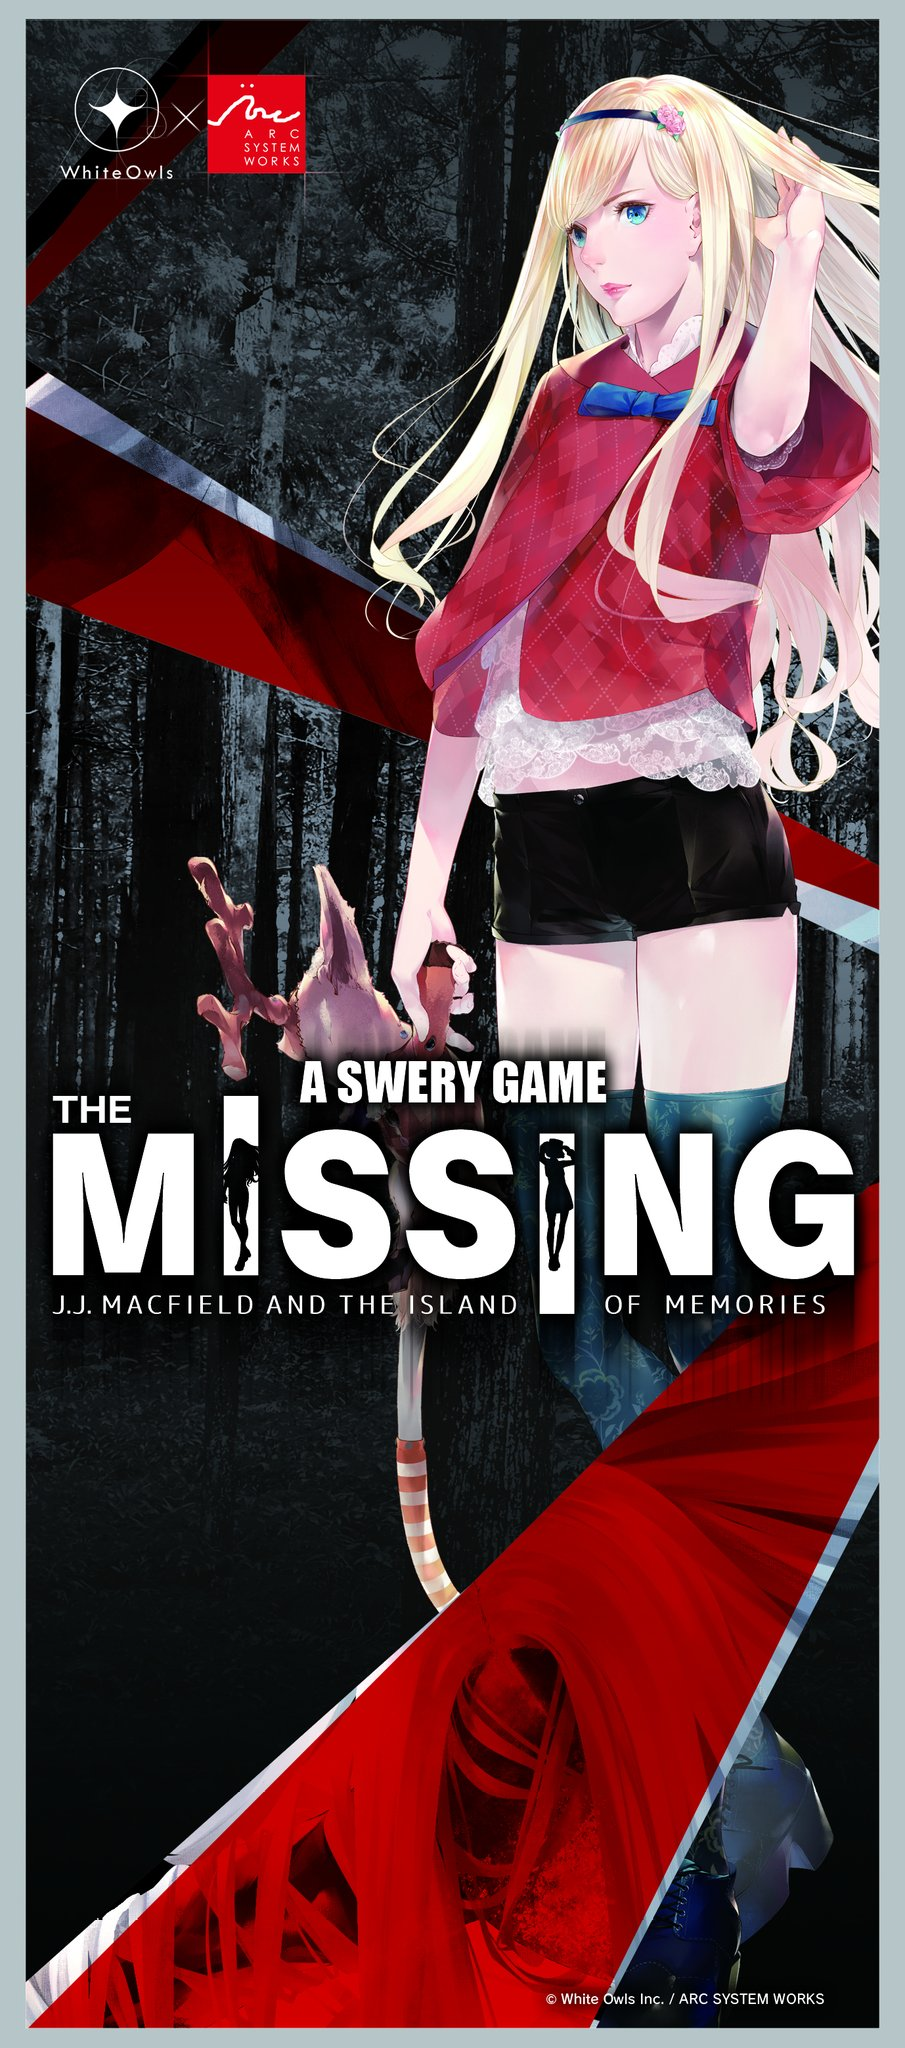 The Missing J.J. Macfield and the Island of Memories Key Visual